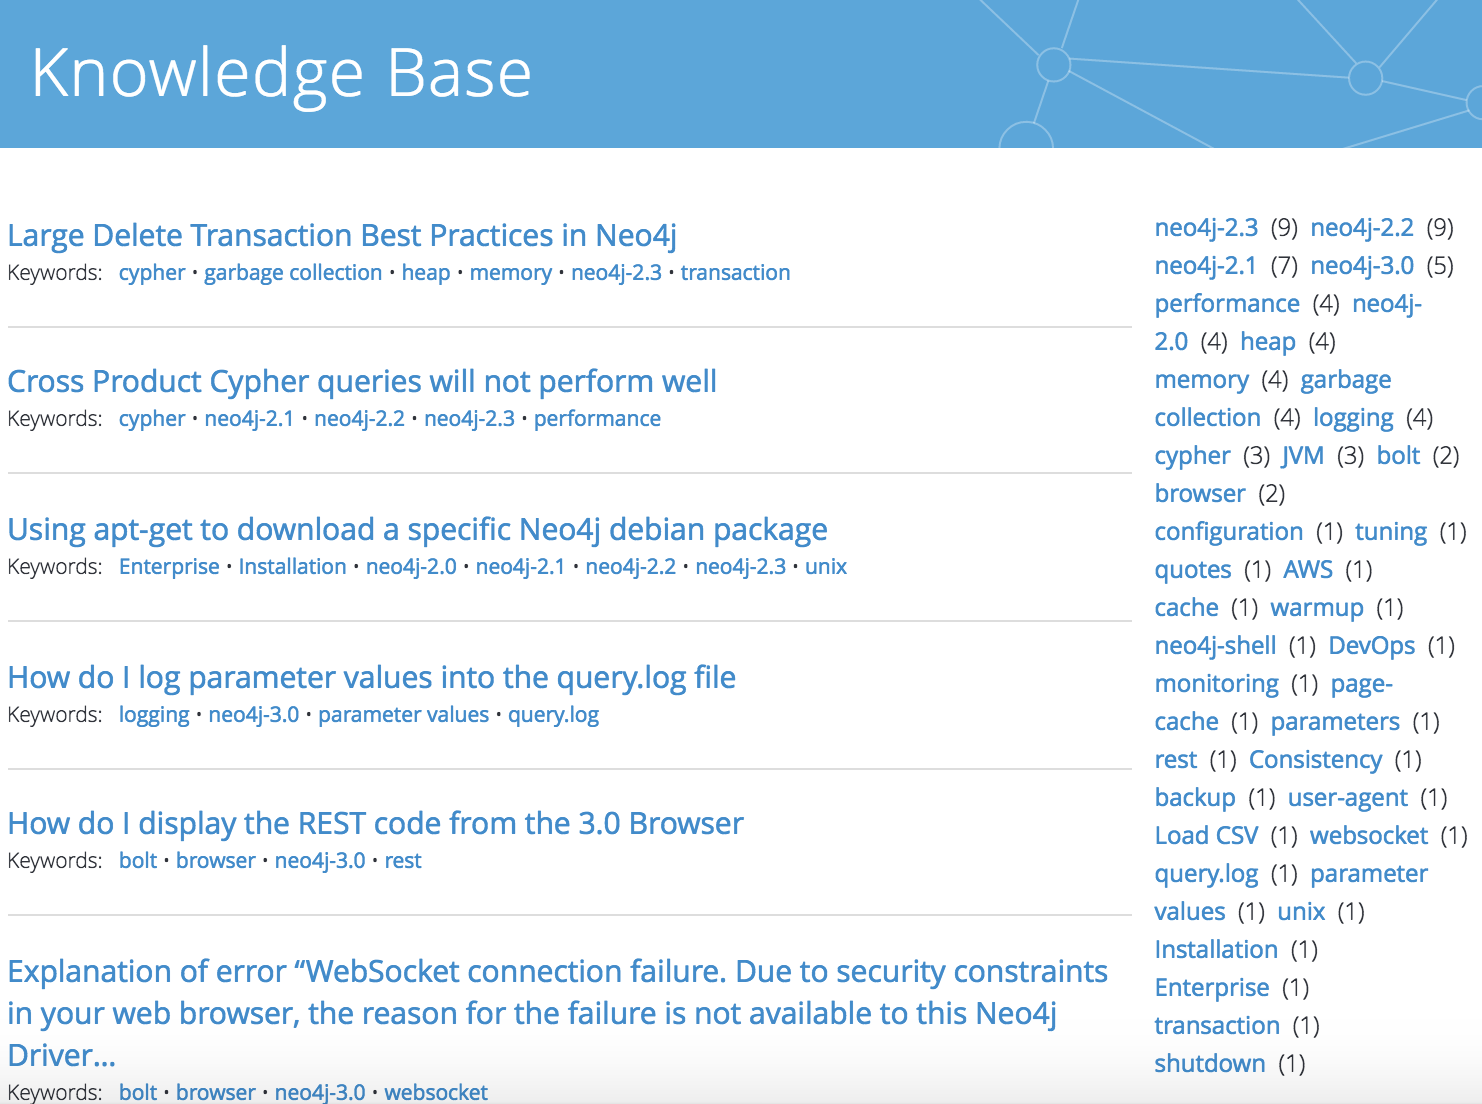 Learn All about the New Neo4j Knowledge Base (and How You Can Contribute) to Answer Common Questions